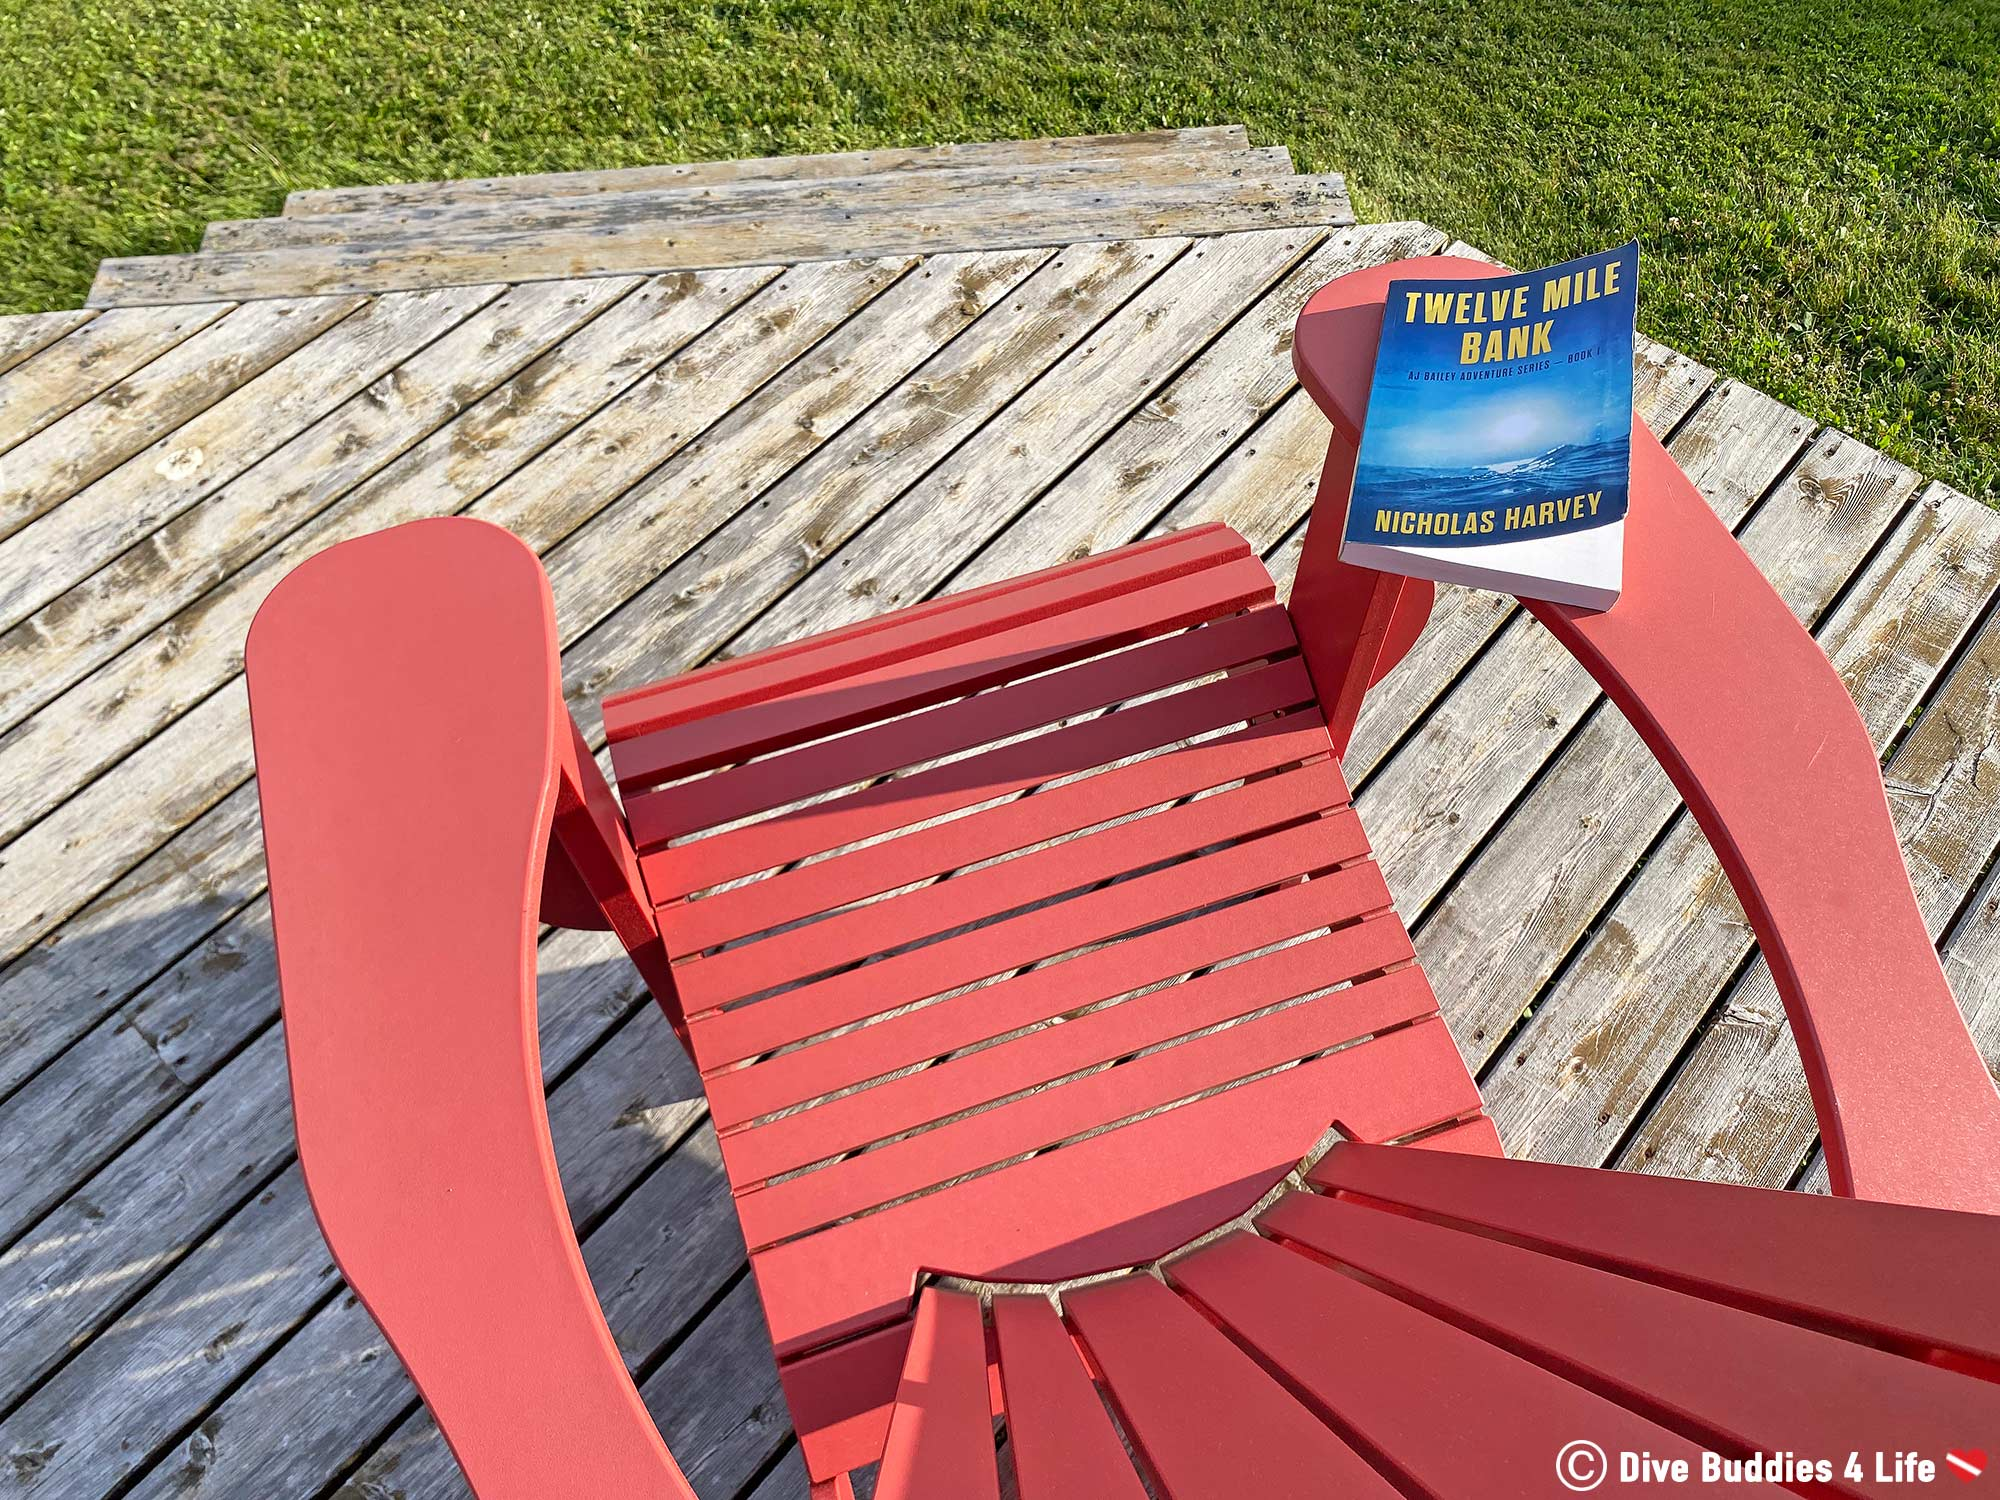 Twelve Mile Bank Scuba Diving Book Laying On The Edge Of A Red Muskoka Chair